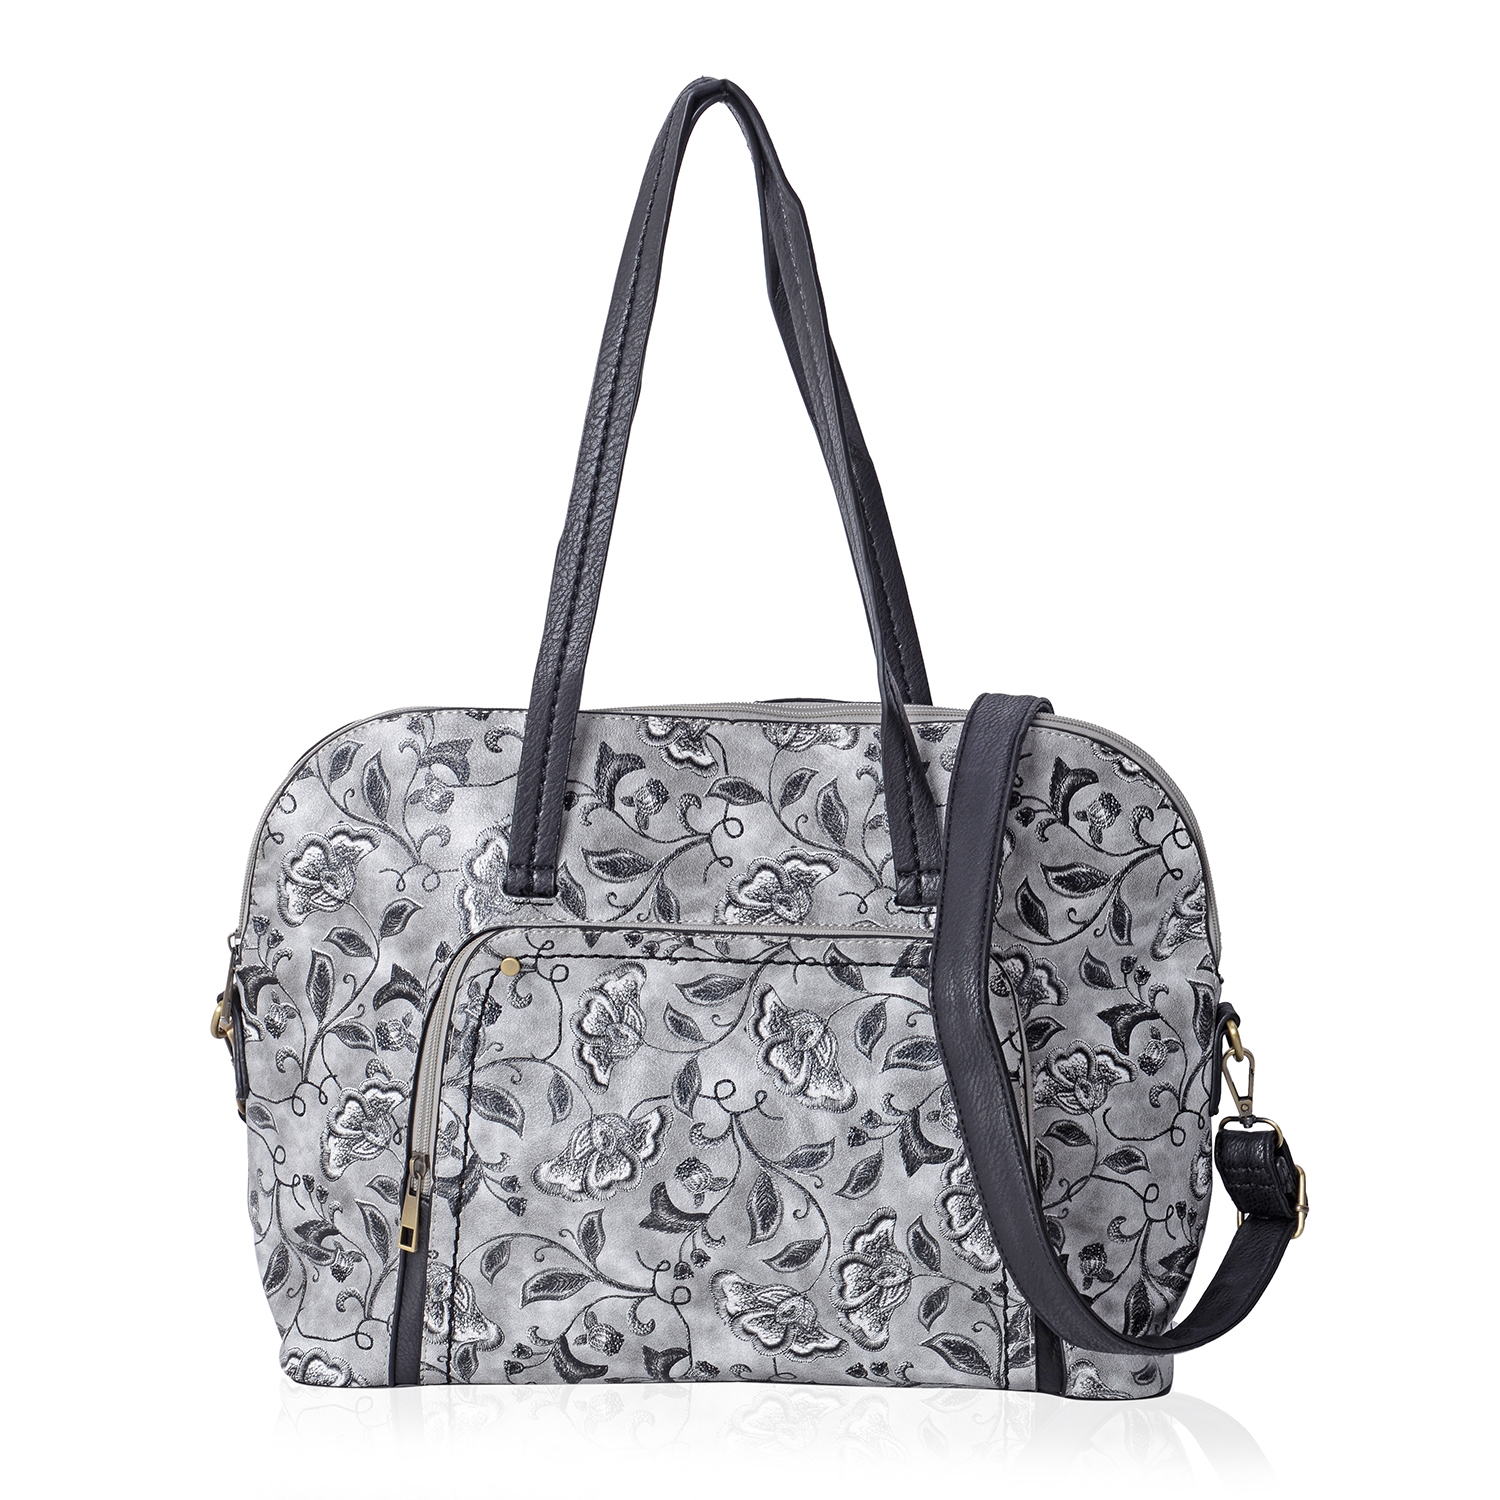 d926101487bc Gray Faux Leather Floral Print Doctor Bag with Removable Shoulder Strap  (15x5x11